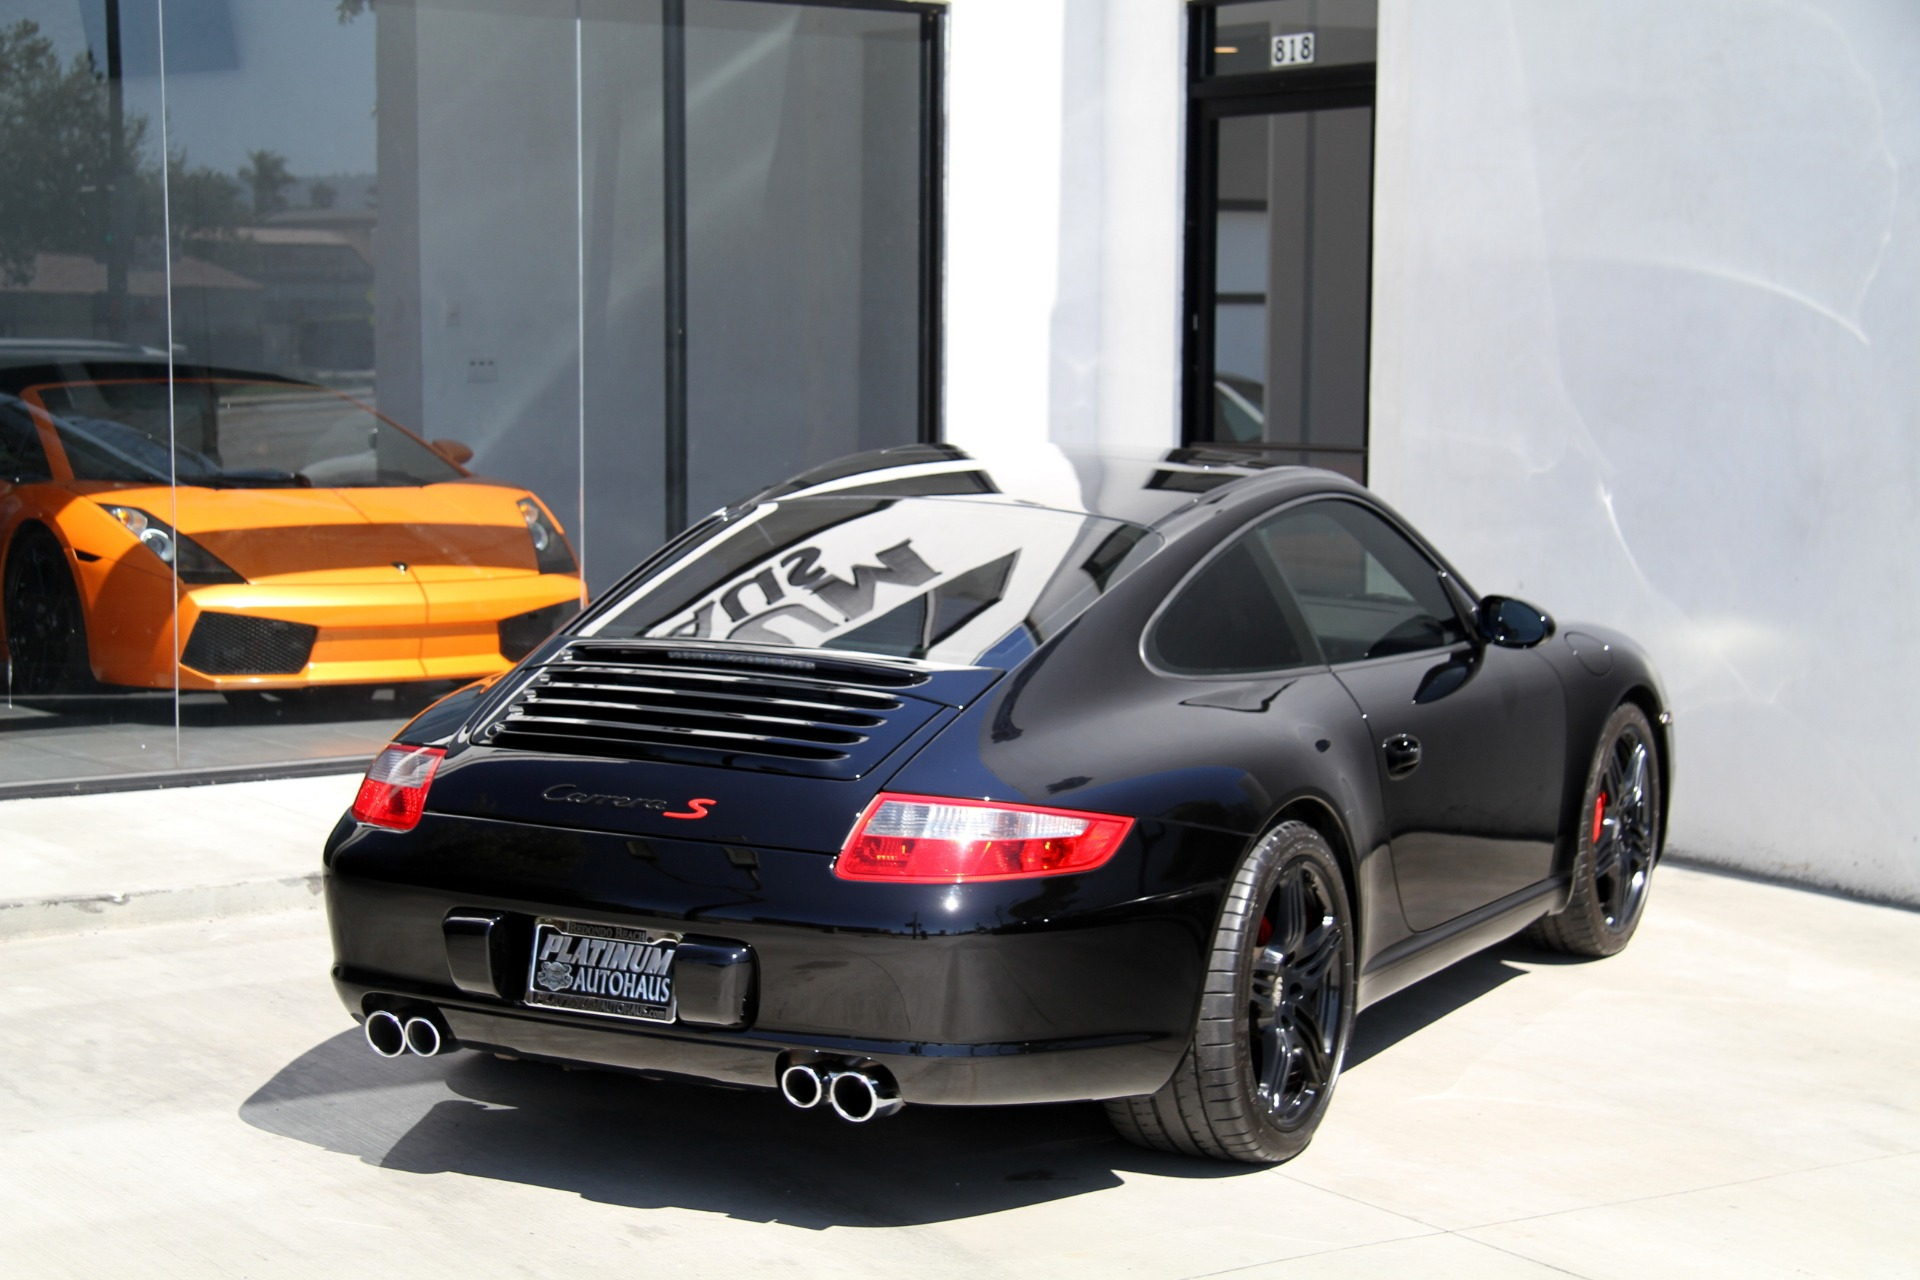 2007 Porsche 911 Carrera S Sport Exhaust Stock